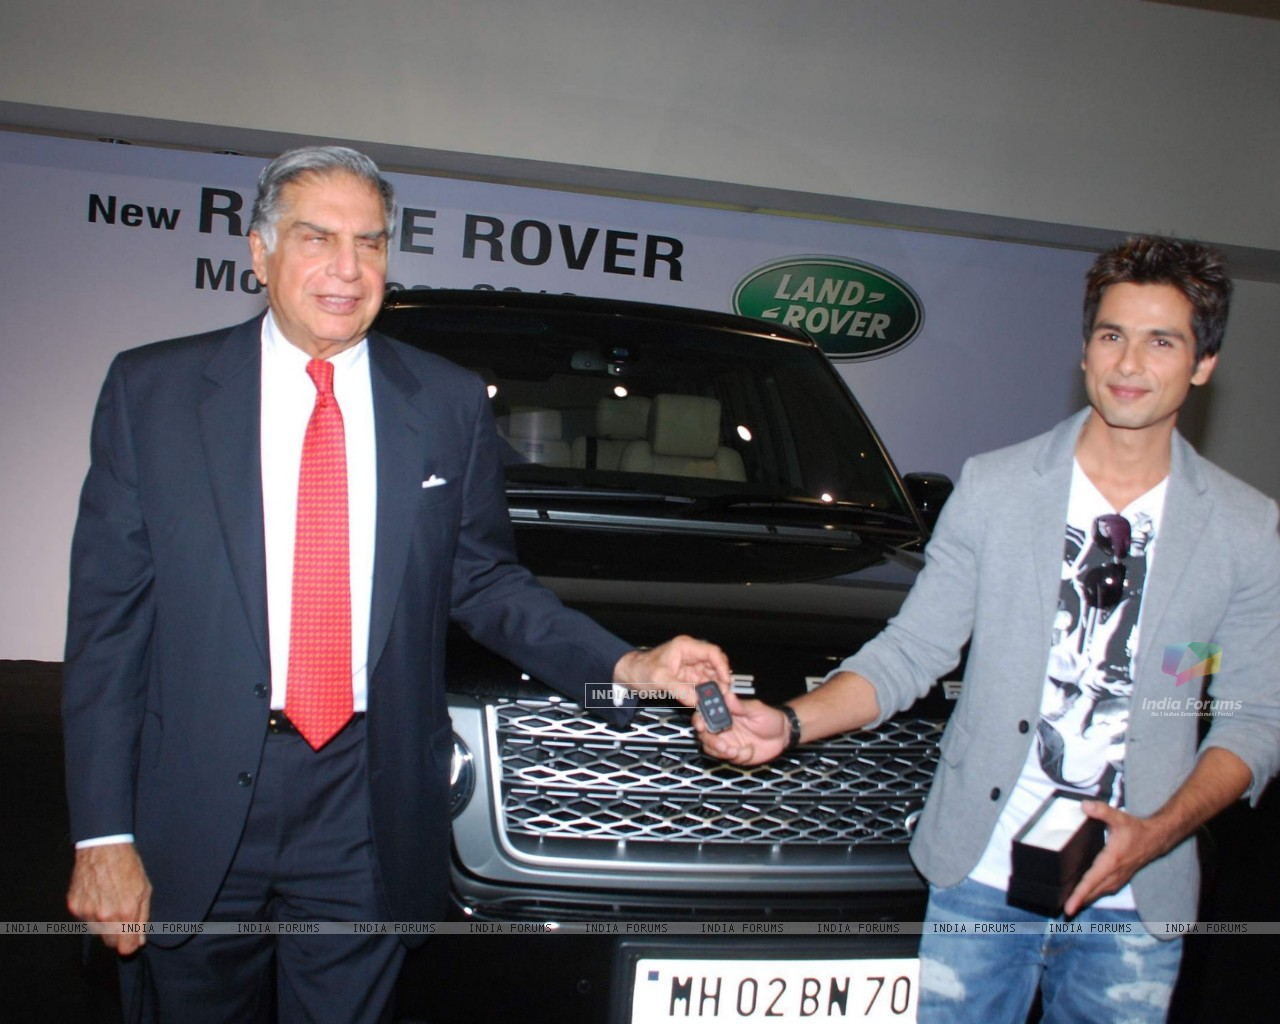 "Shahid Kapoor receiving the keys of his new Range Rover Model Year 2010 from Mr Ratan N Tata, Chairman, Tata Sons & Tata Motors, at the Jaguar Land Rover Showroom in Mumbai on 2nd November 2009 Mr Kapoor purchased this Range Rover"" (81775) size:1280x1024"